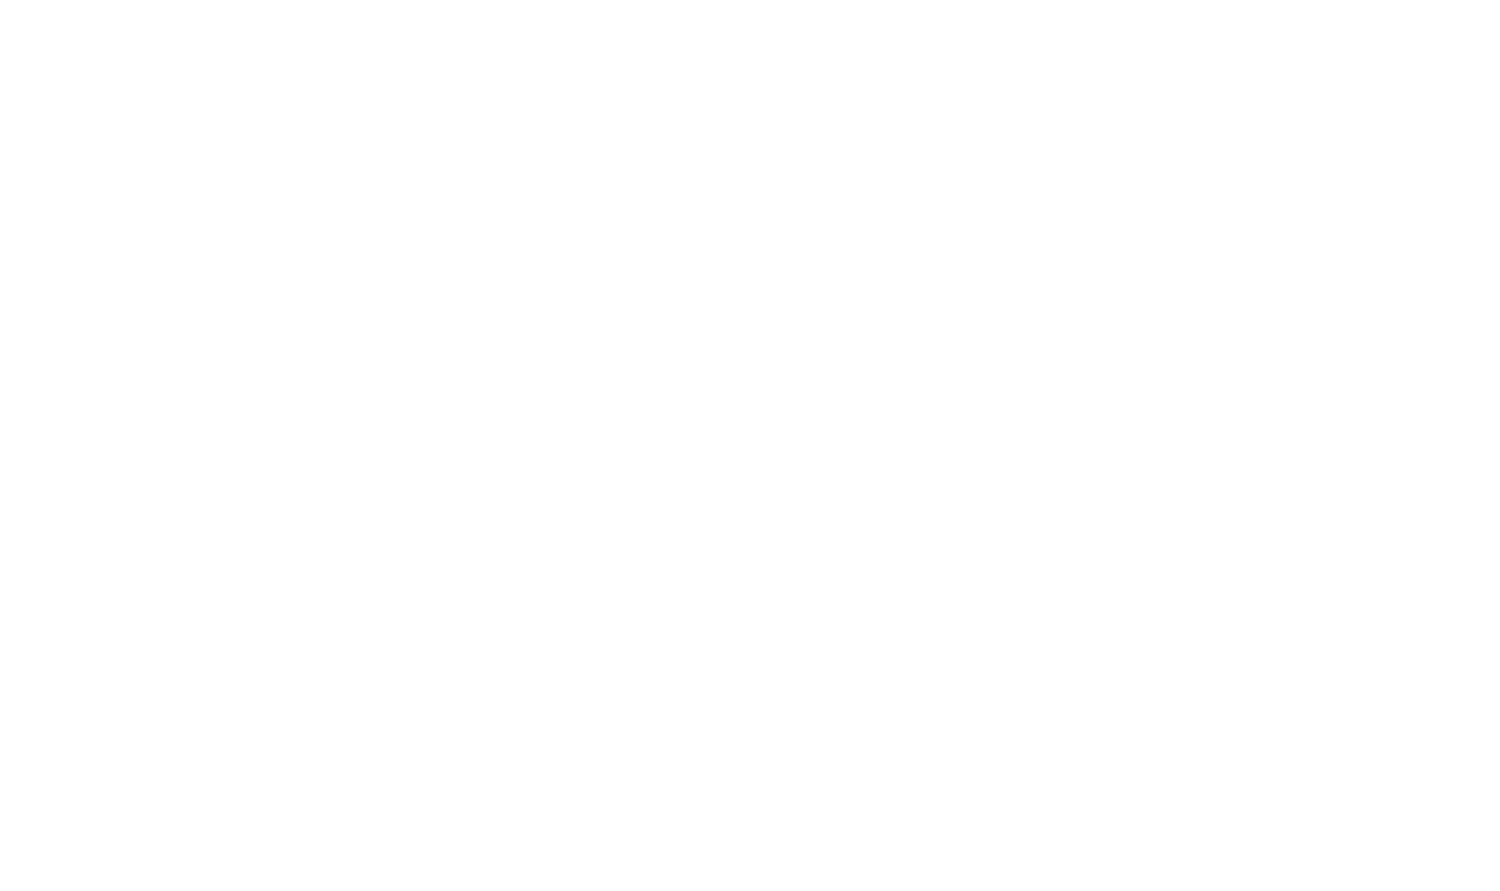 Warwick Engineering Society